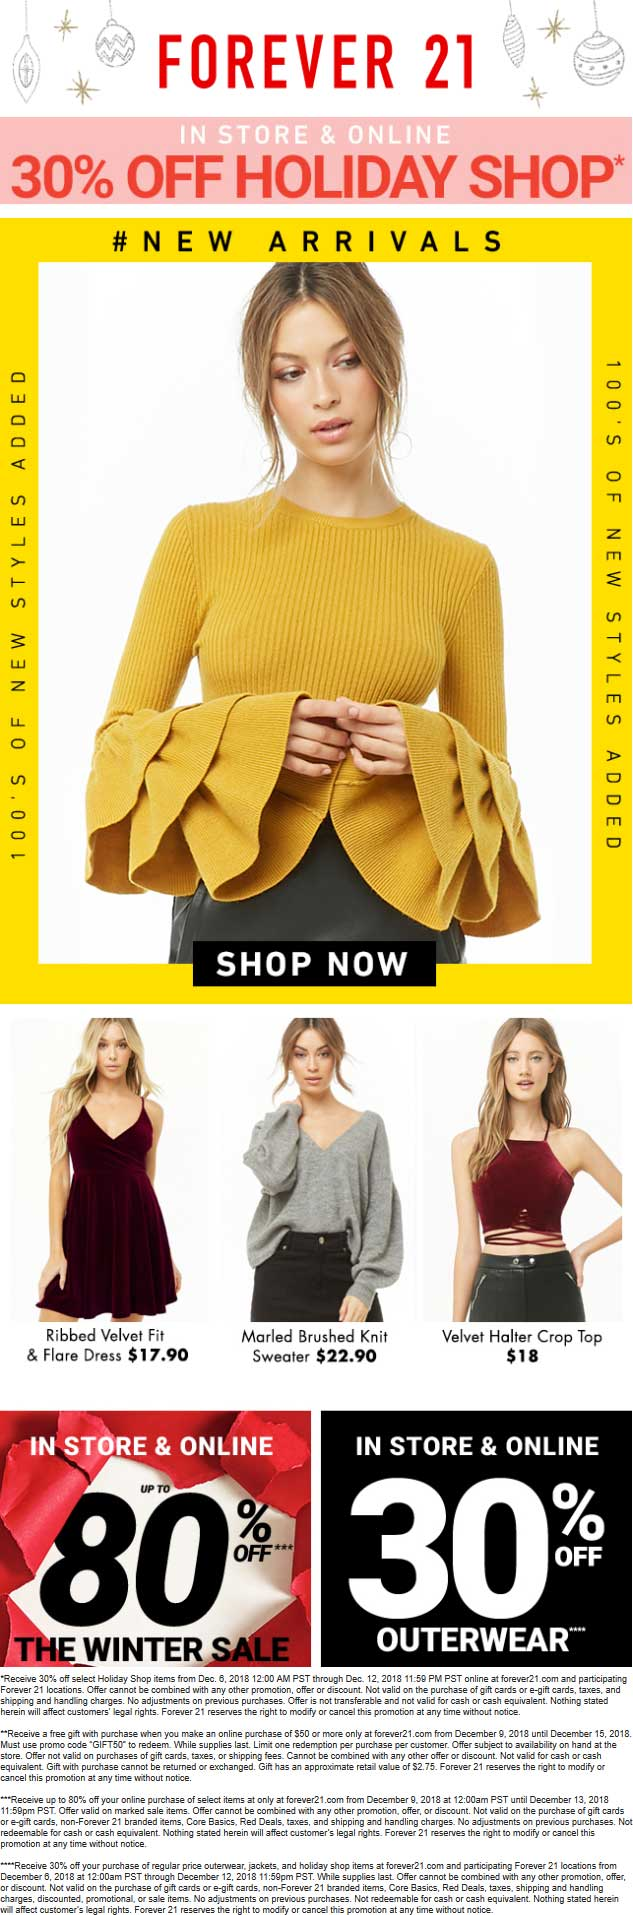 Forever 21 Coupon May 2020 30% off at Forever 21, ditto online